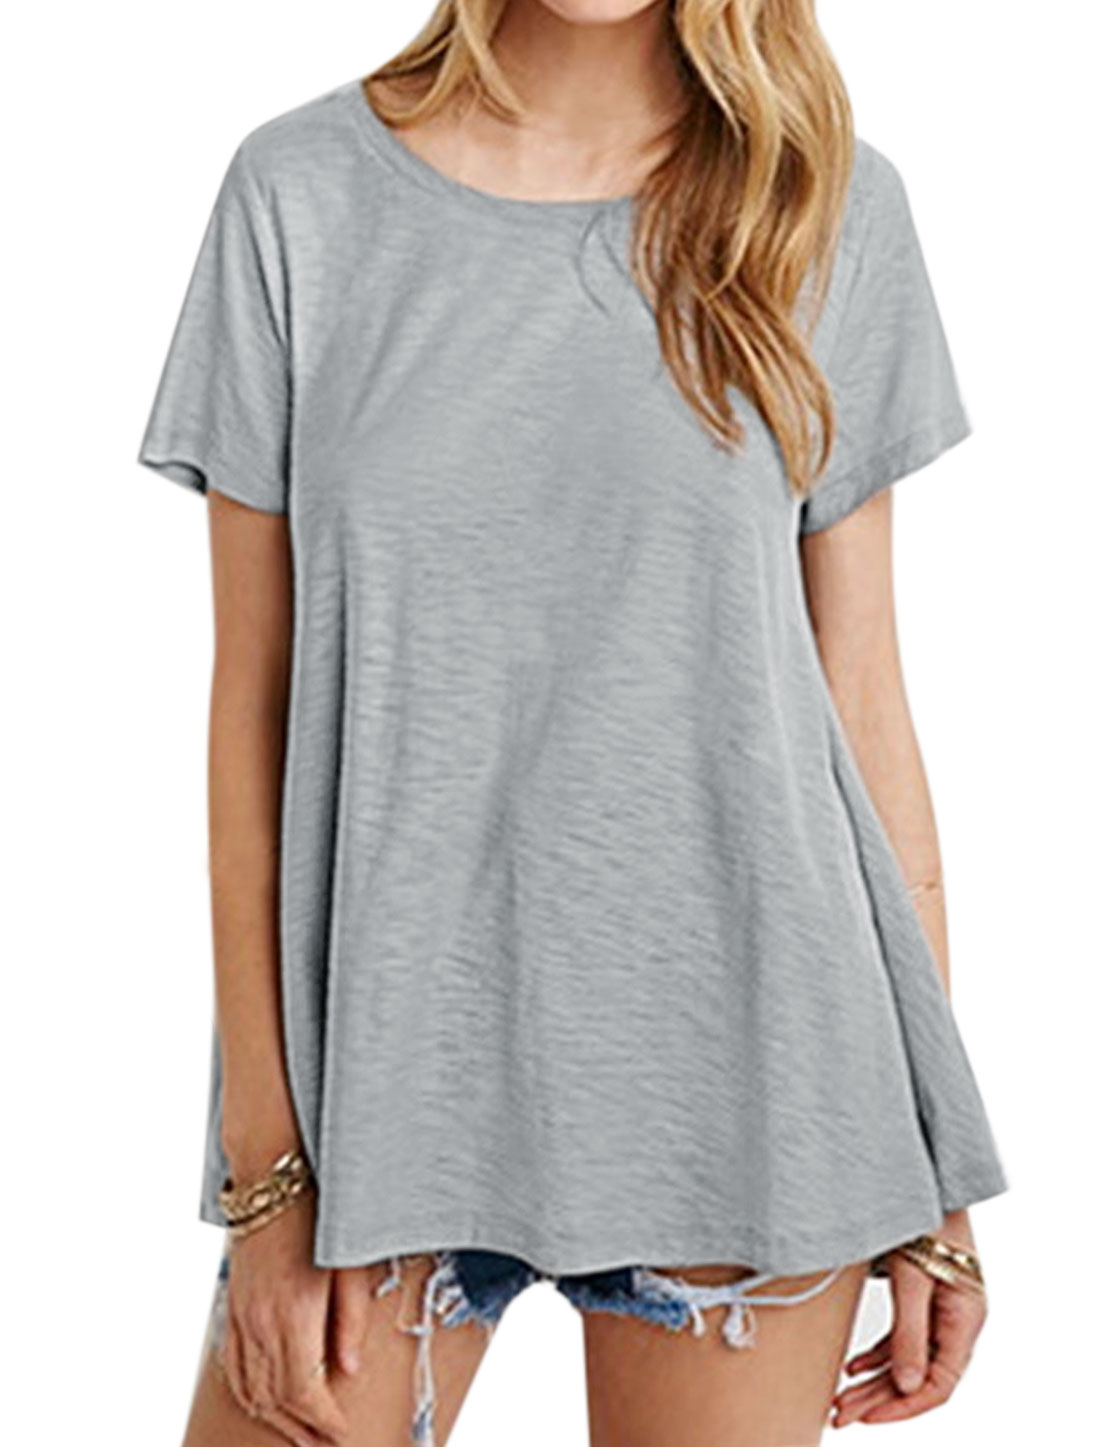 Women Round Neck Short Sleeves Loose Tee Gray XS